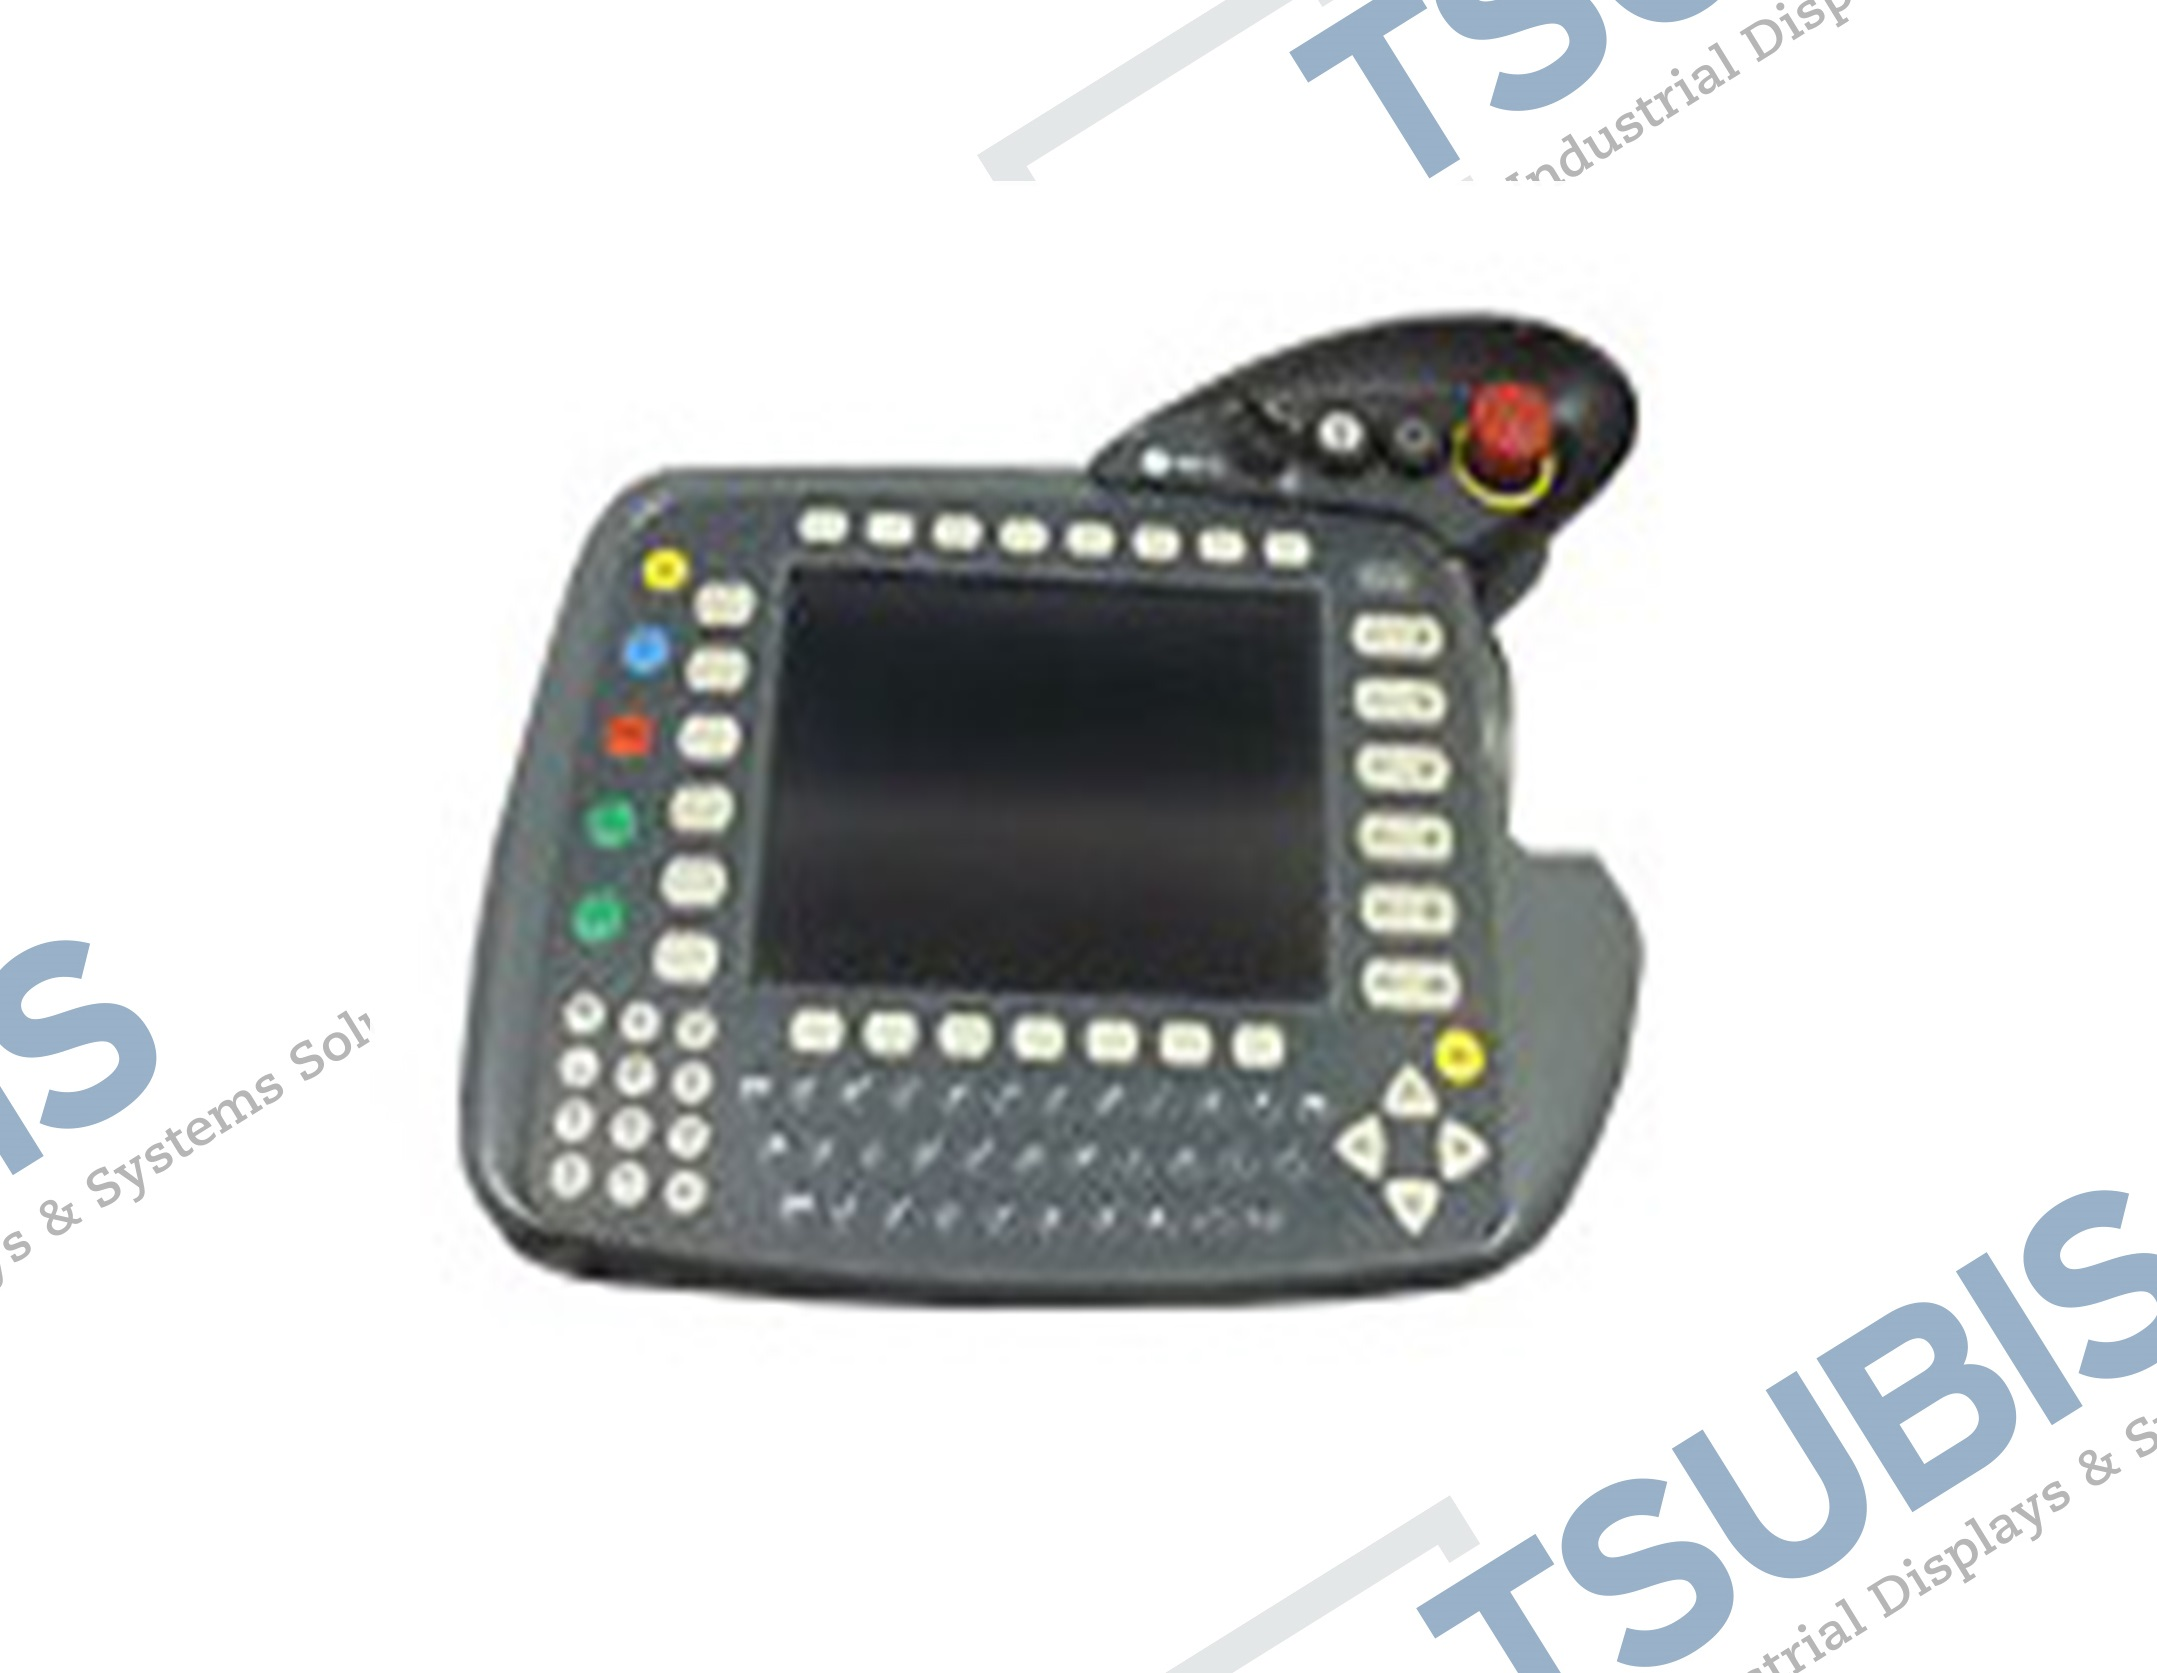 Replacement monitor for Okuma OSP3000 / 500L-G